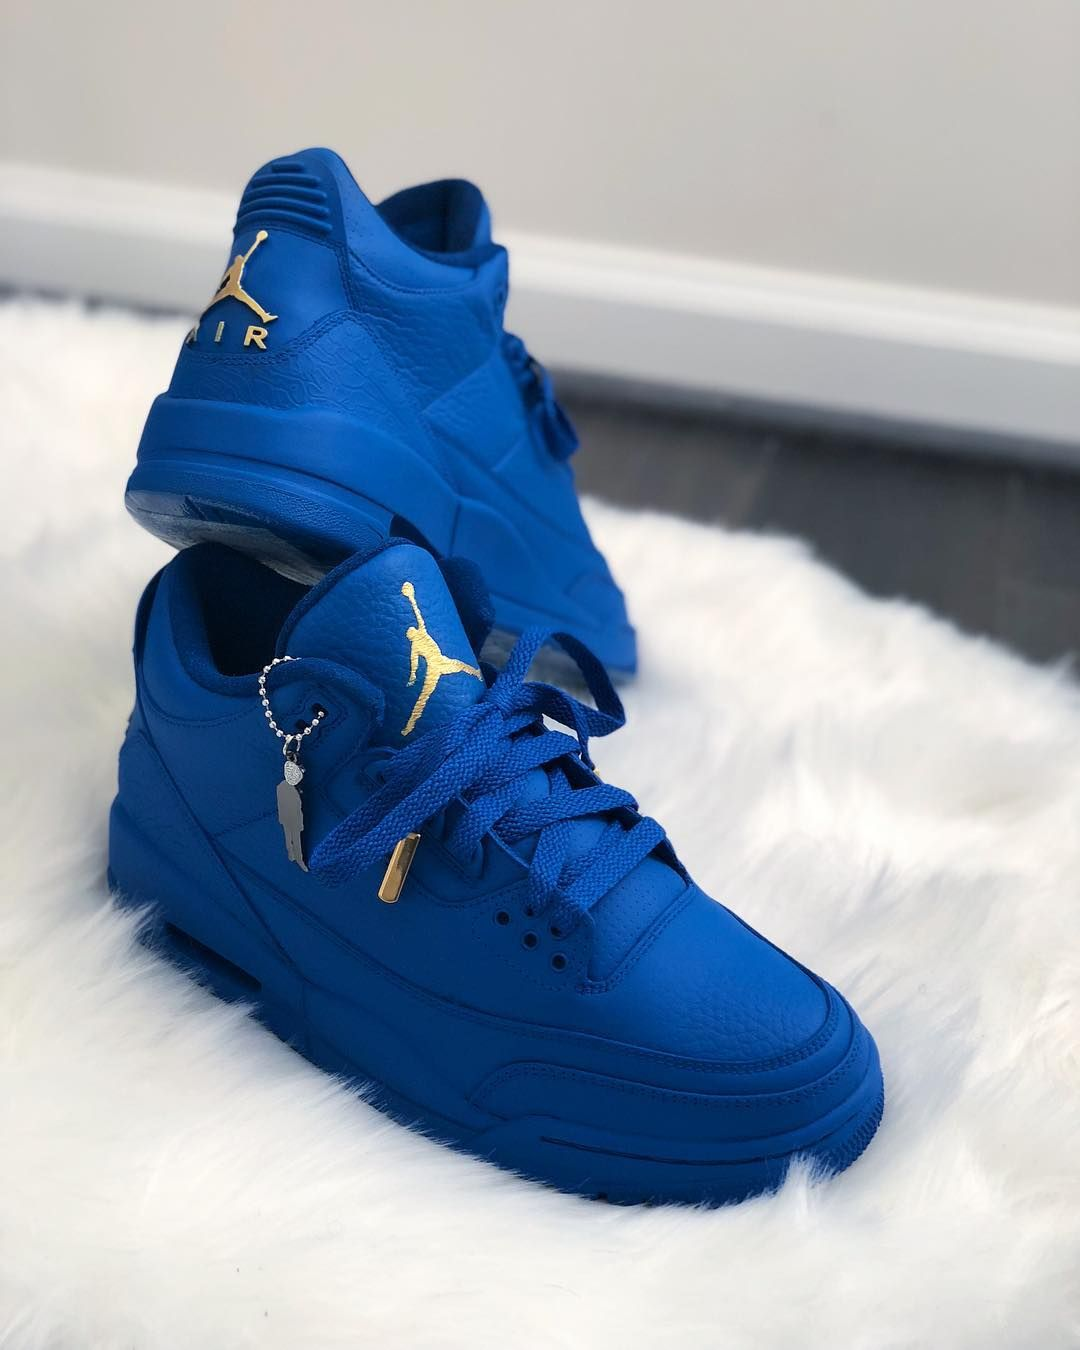 56e3b8cbdf5 Air Jordan Blue Gold Custom | Jordans in 2019 | Blue jordans, Air ...